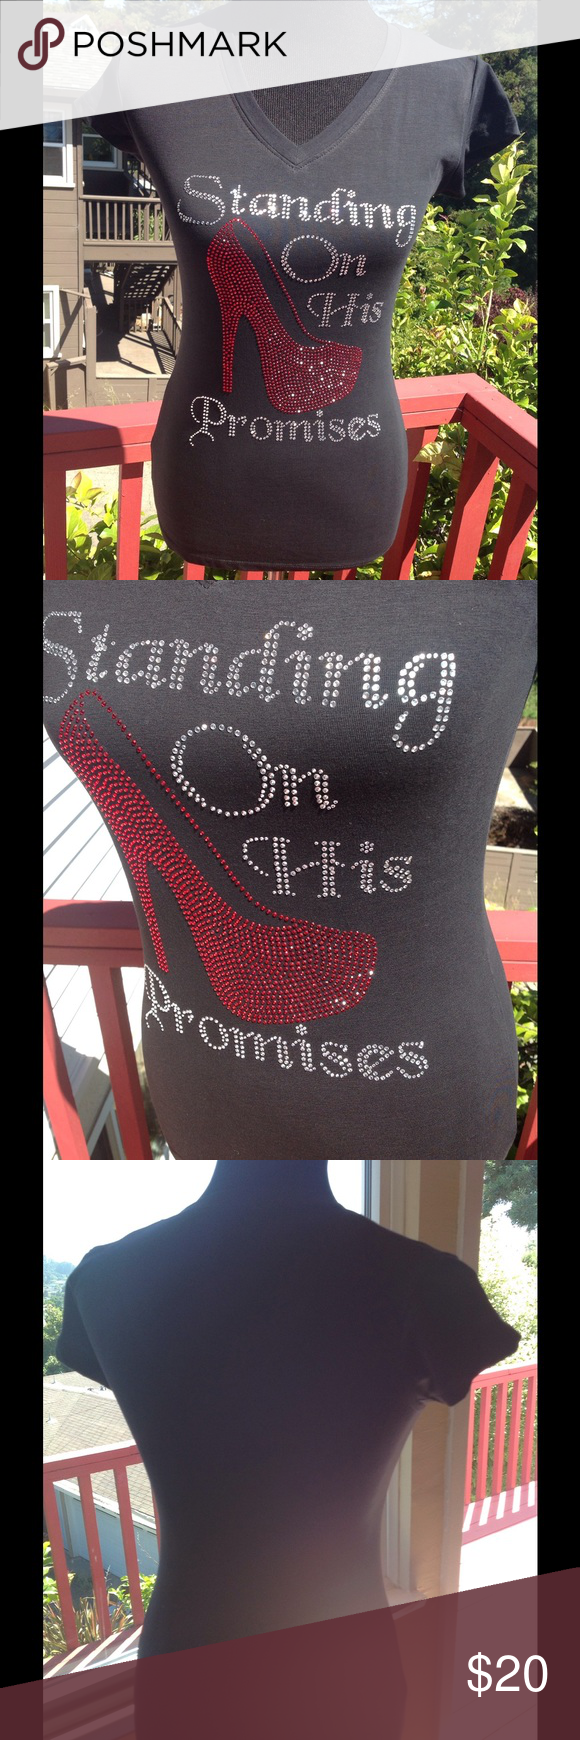 Standing on His Promises✝ Neck T-shirt ~ Reads standing on His promises because we are all standing on the promises of God! ~ this one is loaded up with custom bling $price$ firm Custom Ayankoya Tops Tees - Short Sleeve